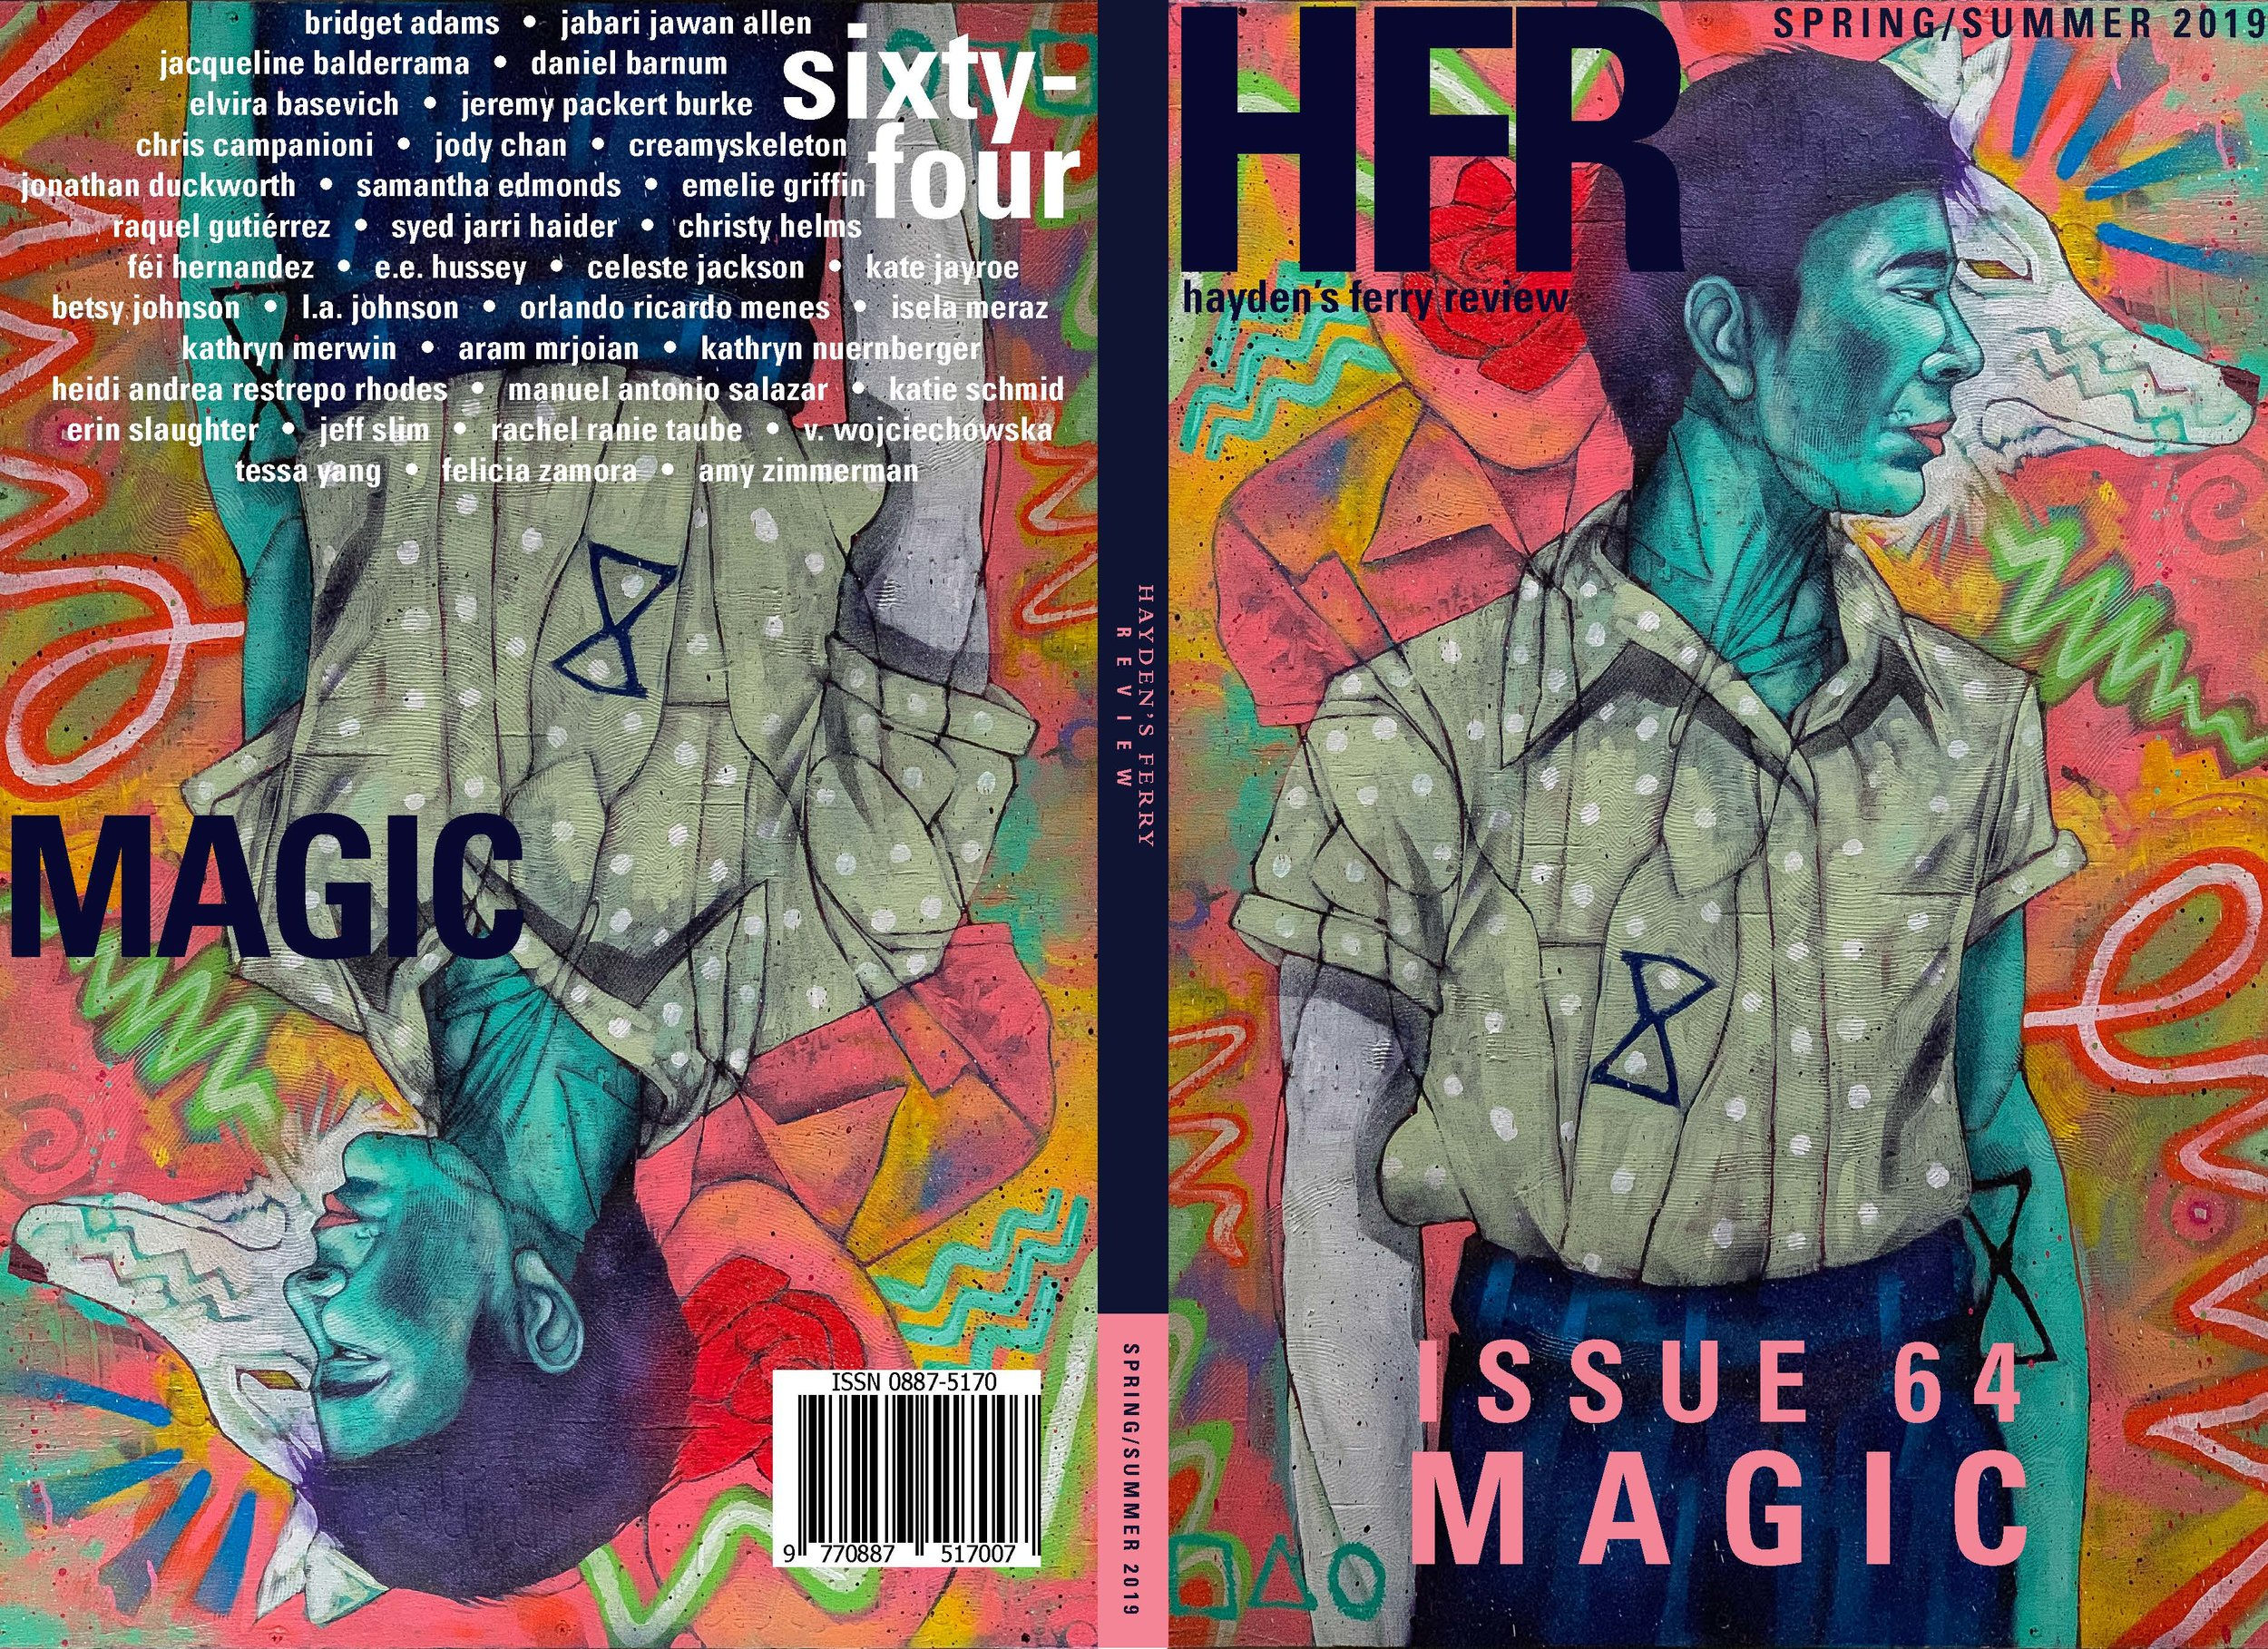 Issue 64: The Magic Issue - $13